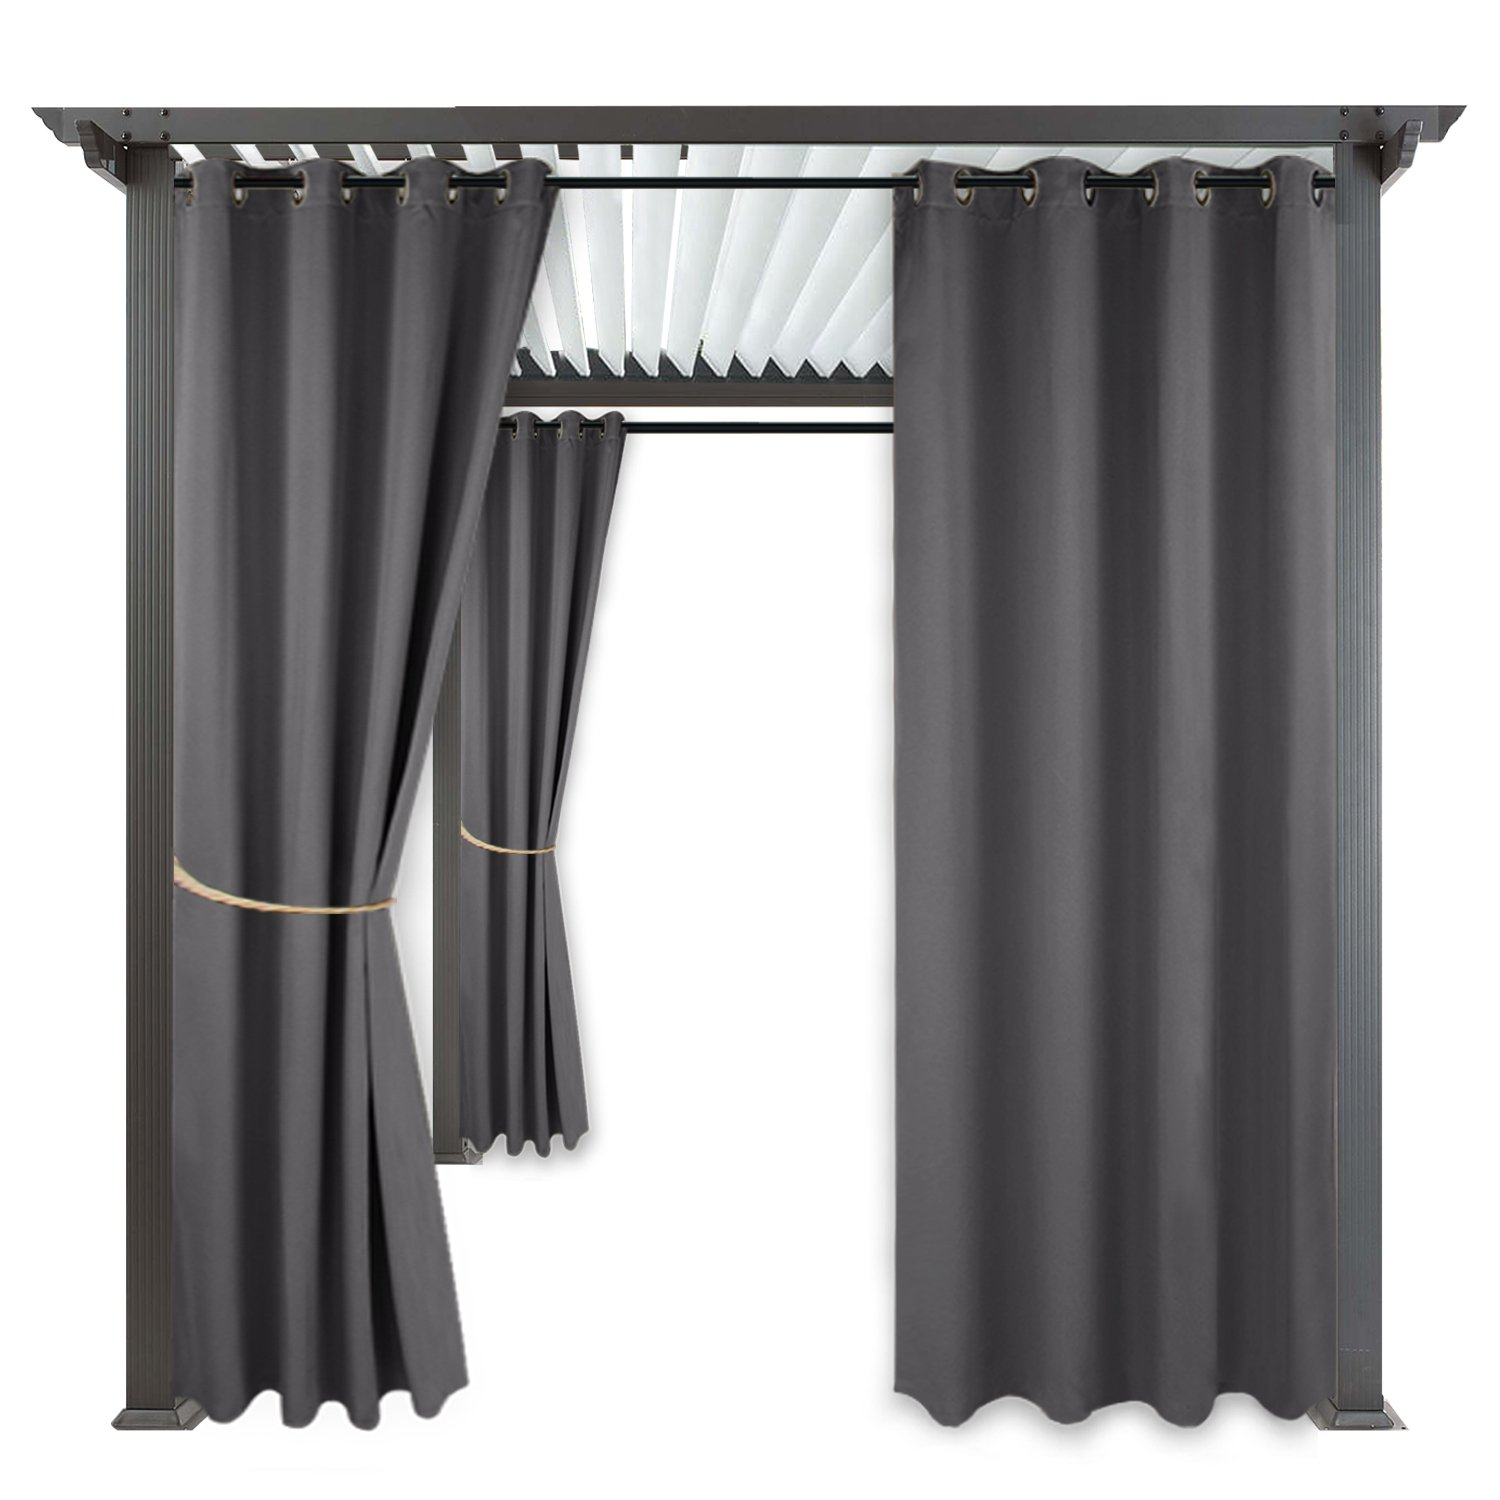 RYB HOME Blackout Outdoor Curtains - Indoor Outdoor Curtains Shades Grommet Top Waterproof & Windproof Privacy Protect Drapes for Front Gazebo/Patio, 1 Panel, Wide 52 by Long 84 Inch, Grey